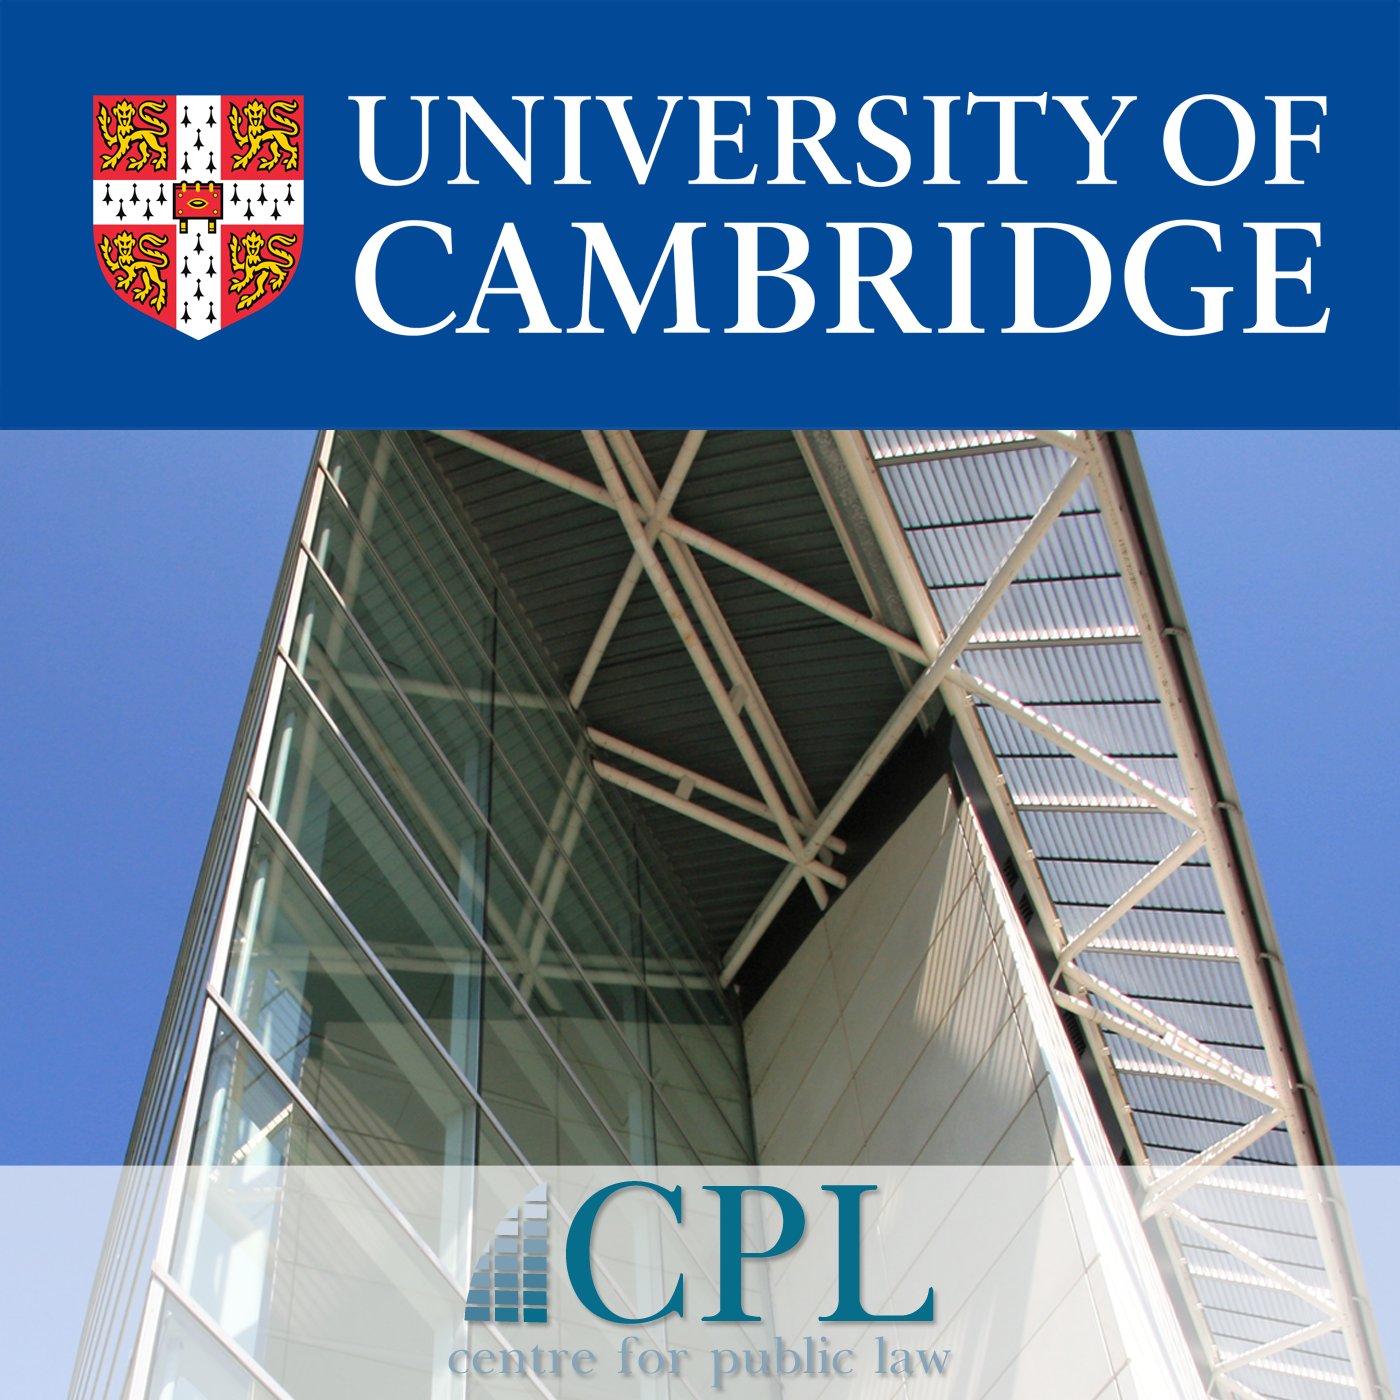 Public Law Conference 2014: Process and Substance in Public Law's image